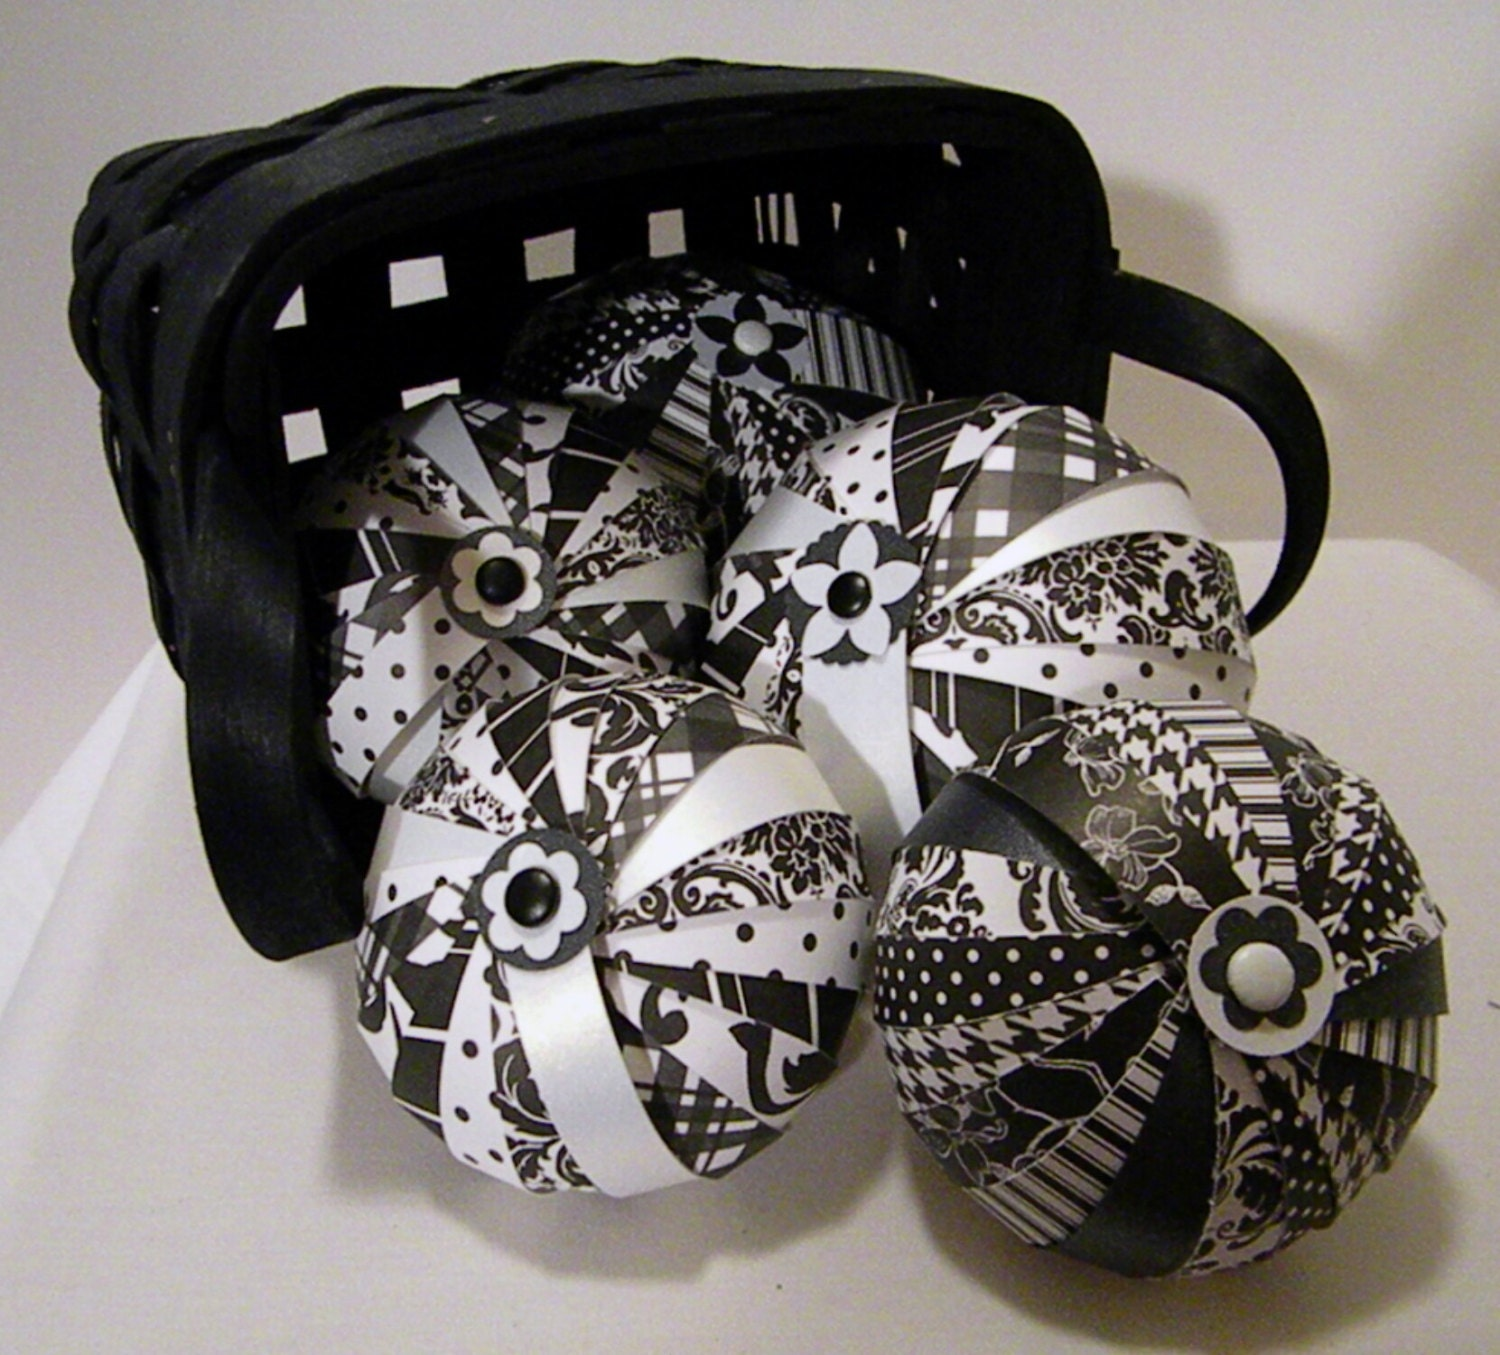 Black Decorative Balls For Bowls: Decorative Accent Balls Bowl Fillers Chic By Glamourontheporch